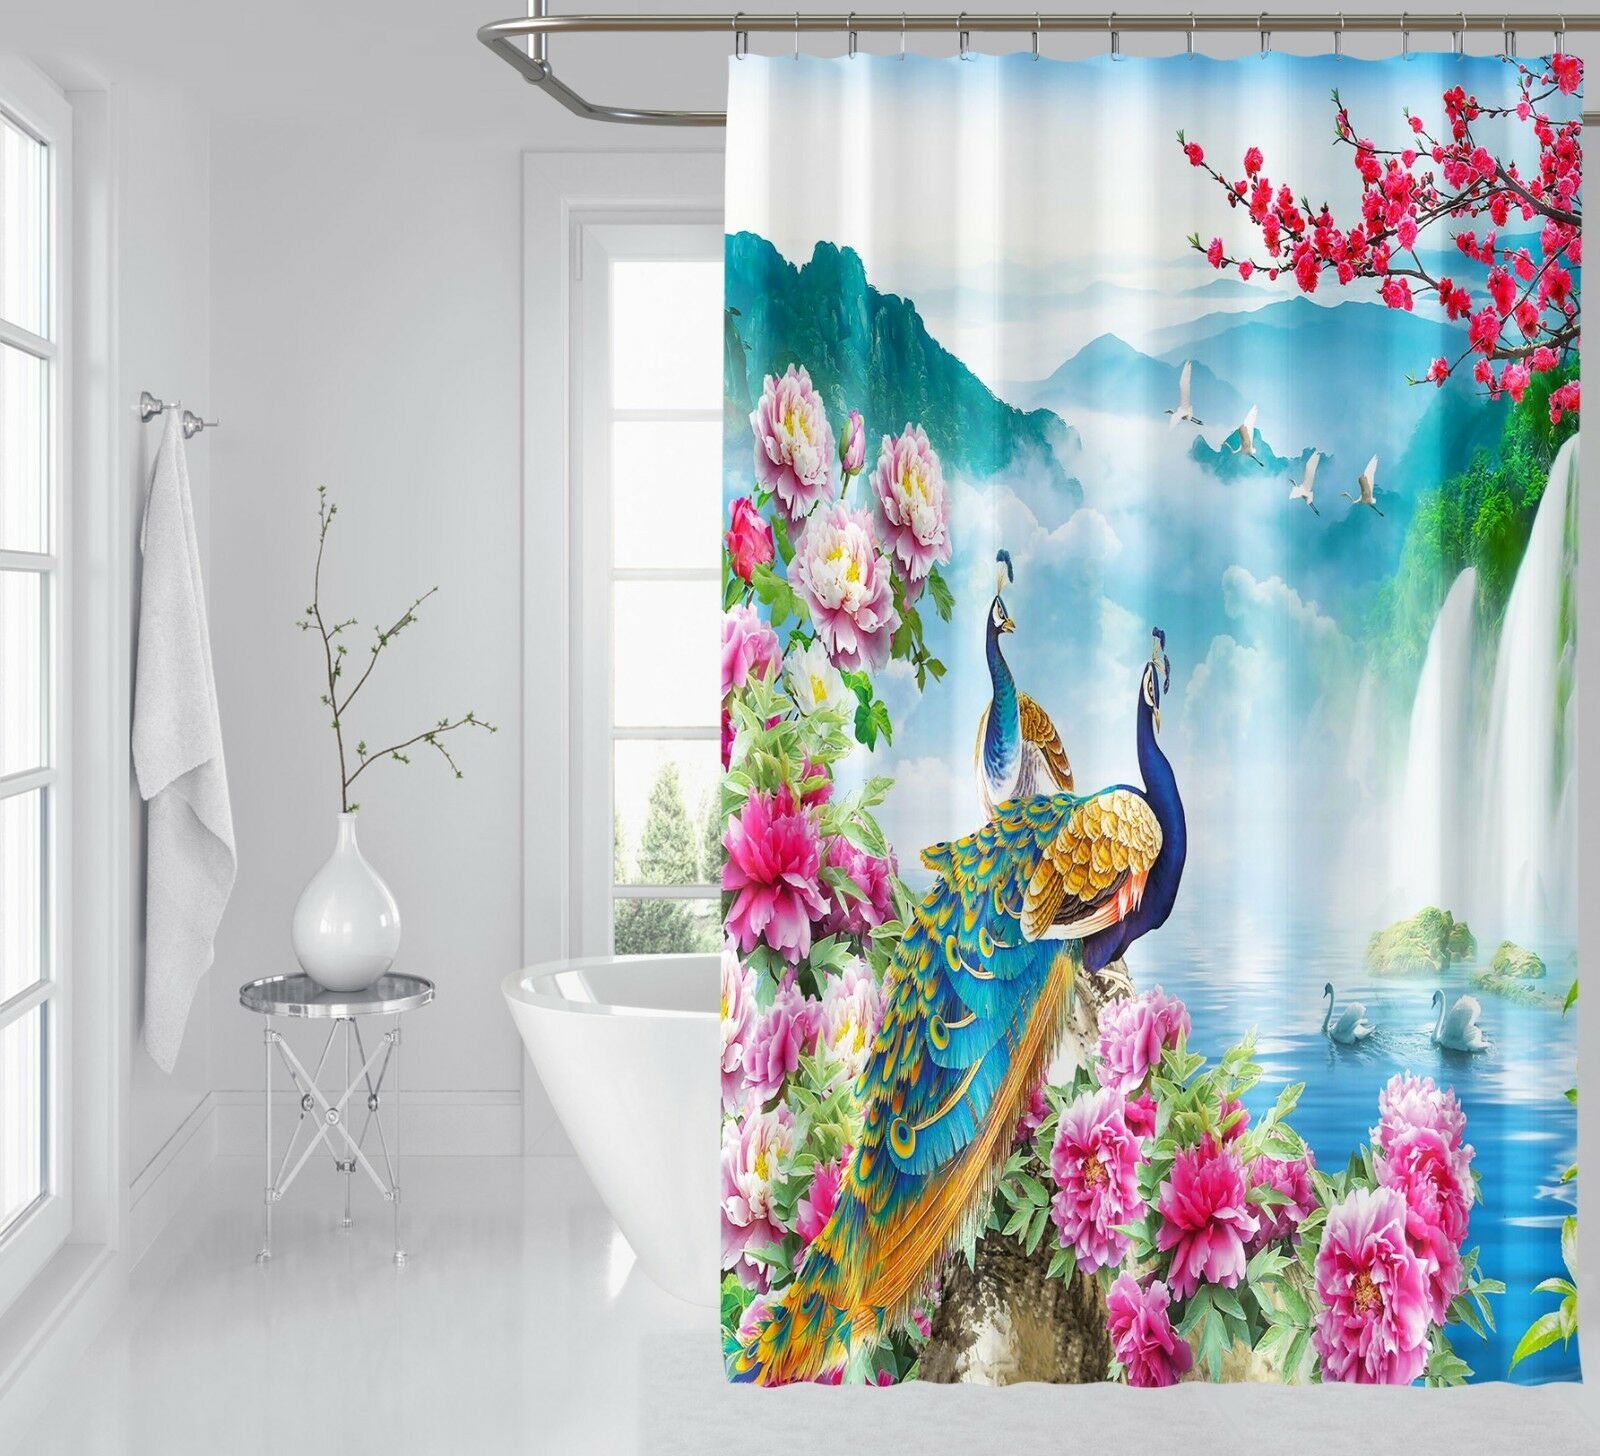 3D Pfau Blaume 2 2 2 Duschvorhang Wasserdicht Faser Bad Daheim Windows Toilette DE | Authentische Garantie